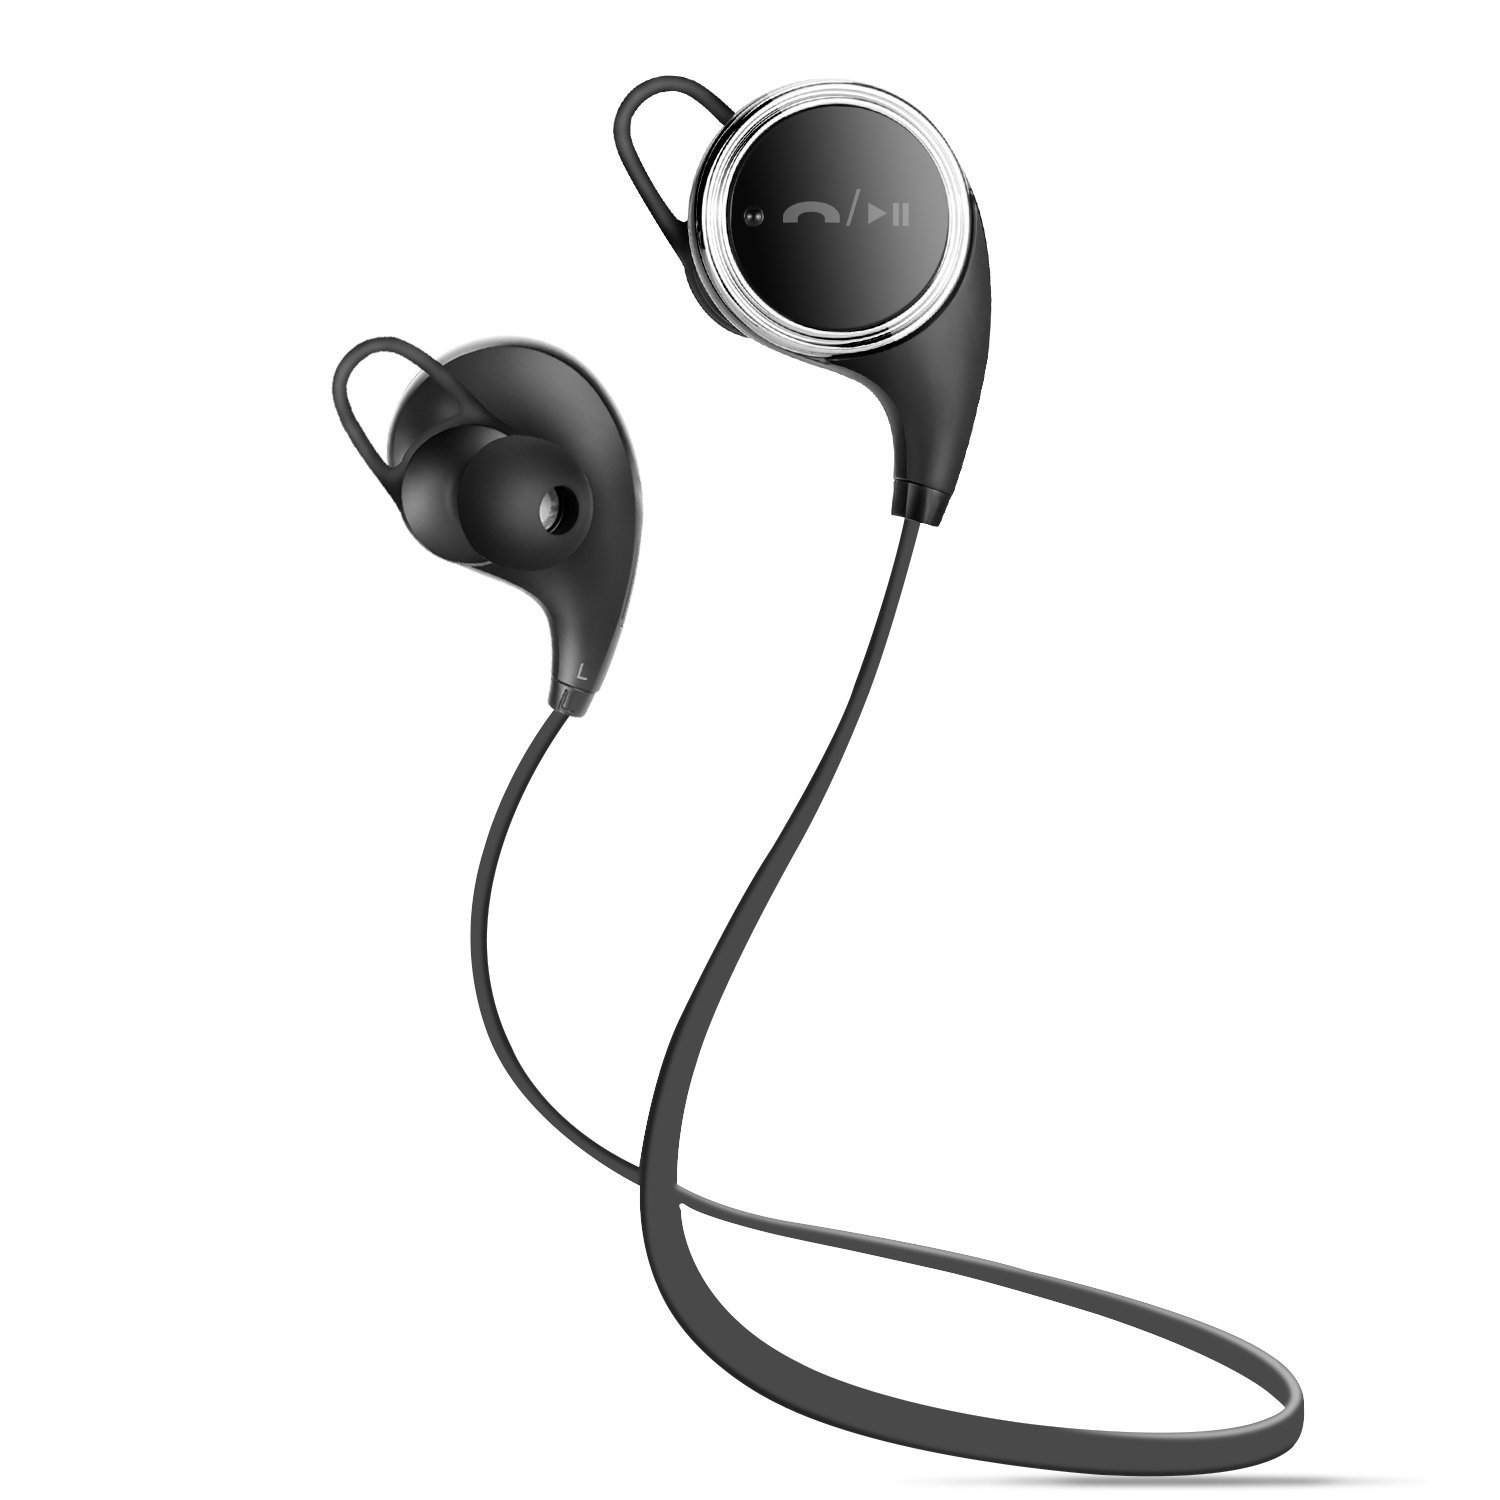 bose bluetooth earphones. amazon.com: bluetooth headphones, trxx wireless in-ear earbuds headset stereo noise cancelling with mic (black): cell phones \u0026 accessories bose earphones n